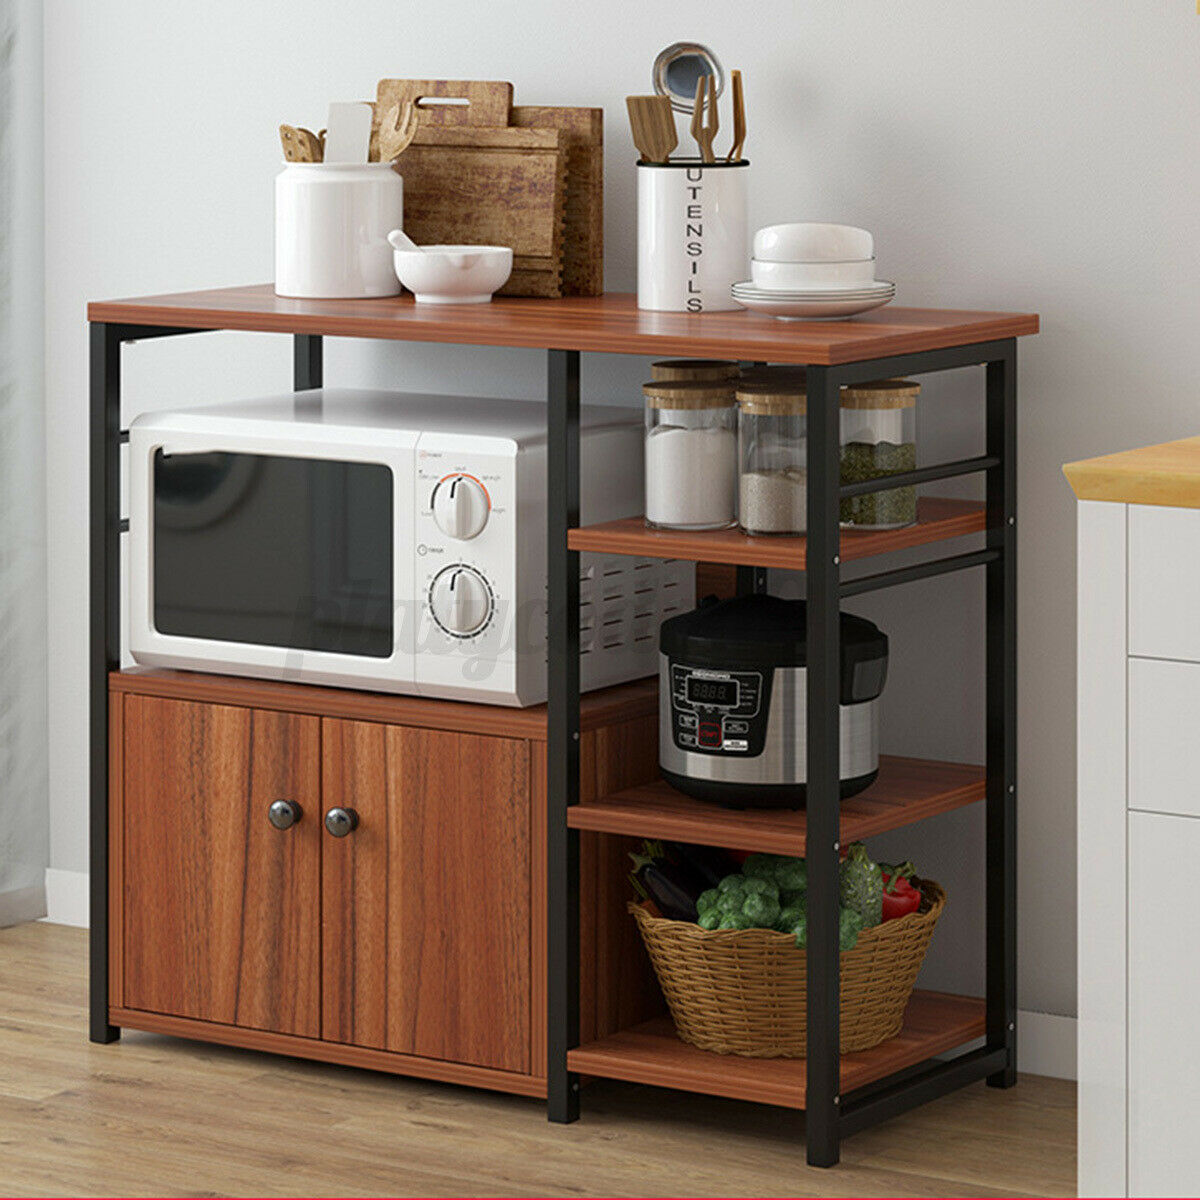 Tall Microwave Cart Stand Kitchen Storage Cabinet Shelves Pantry Cupboard White For Sale Online Ebay